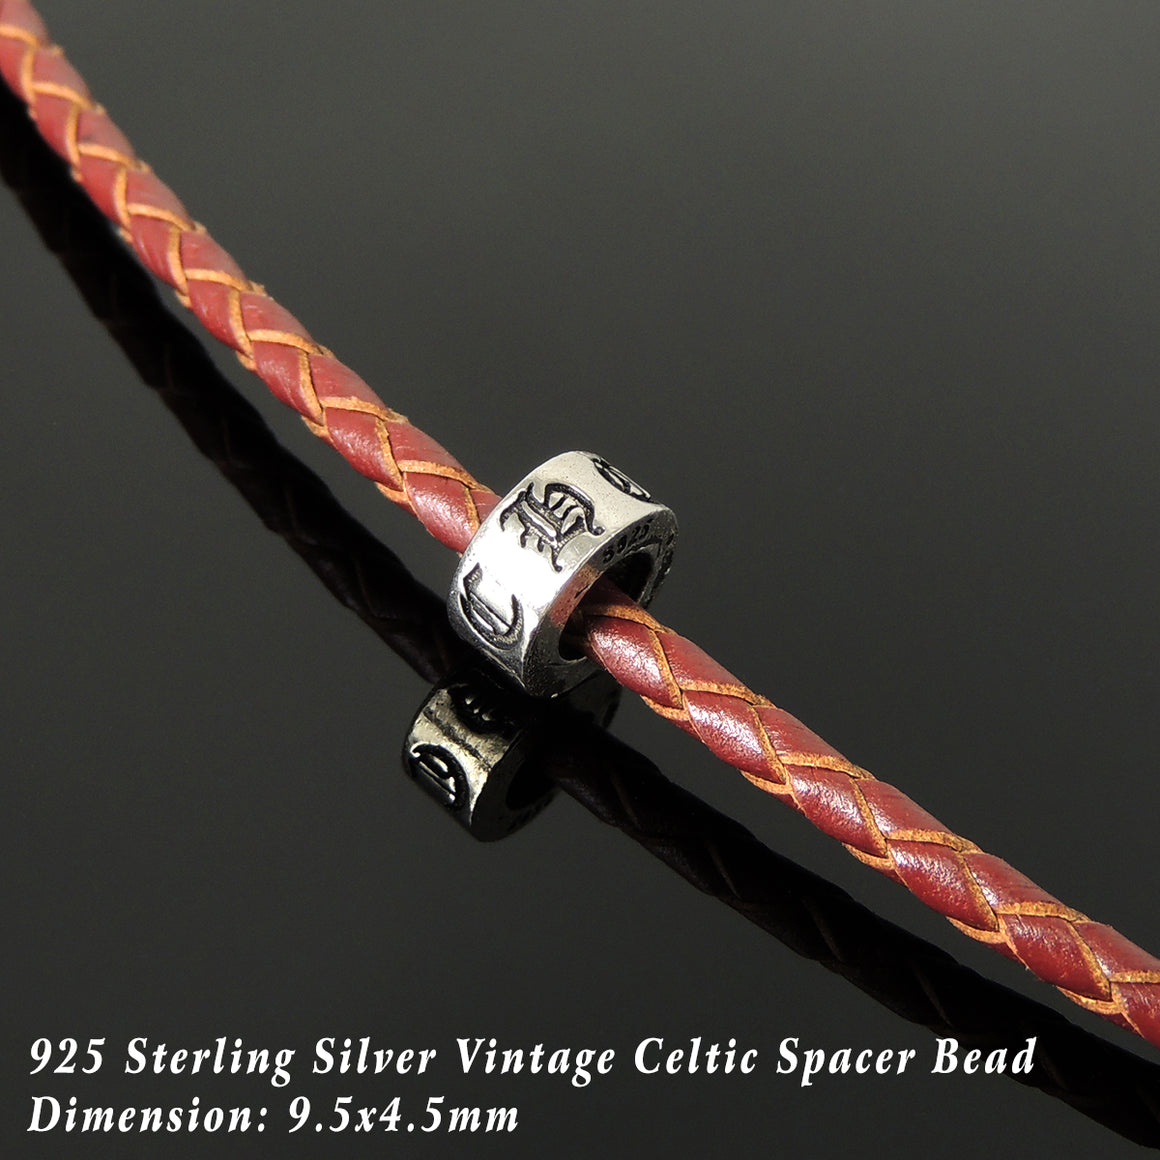 Handmade Vintage Celtic Choker Necklace - Authentic Turkish Red Leather for Men's Women's Casual Style with Sterling Silver 925 (non-plated) Parts NK234